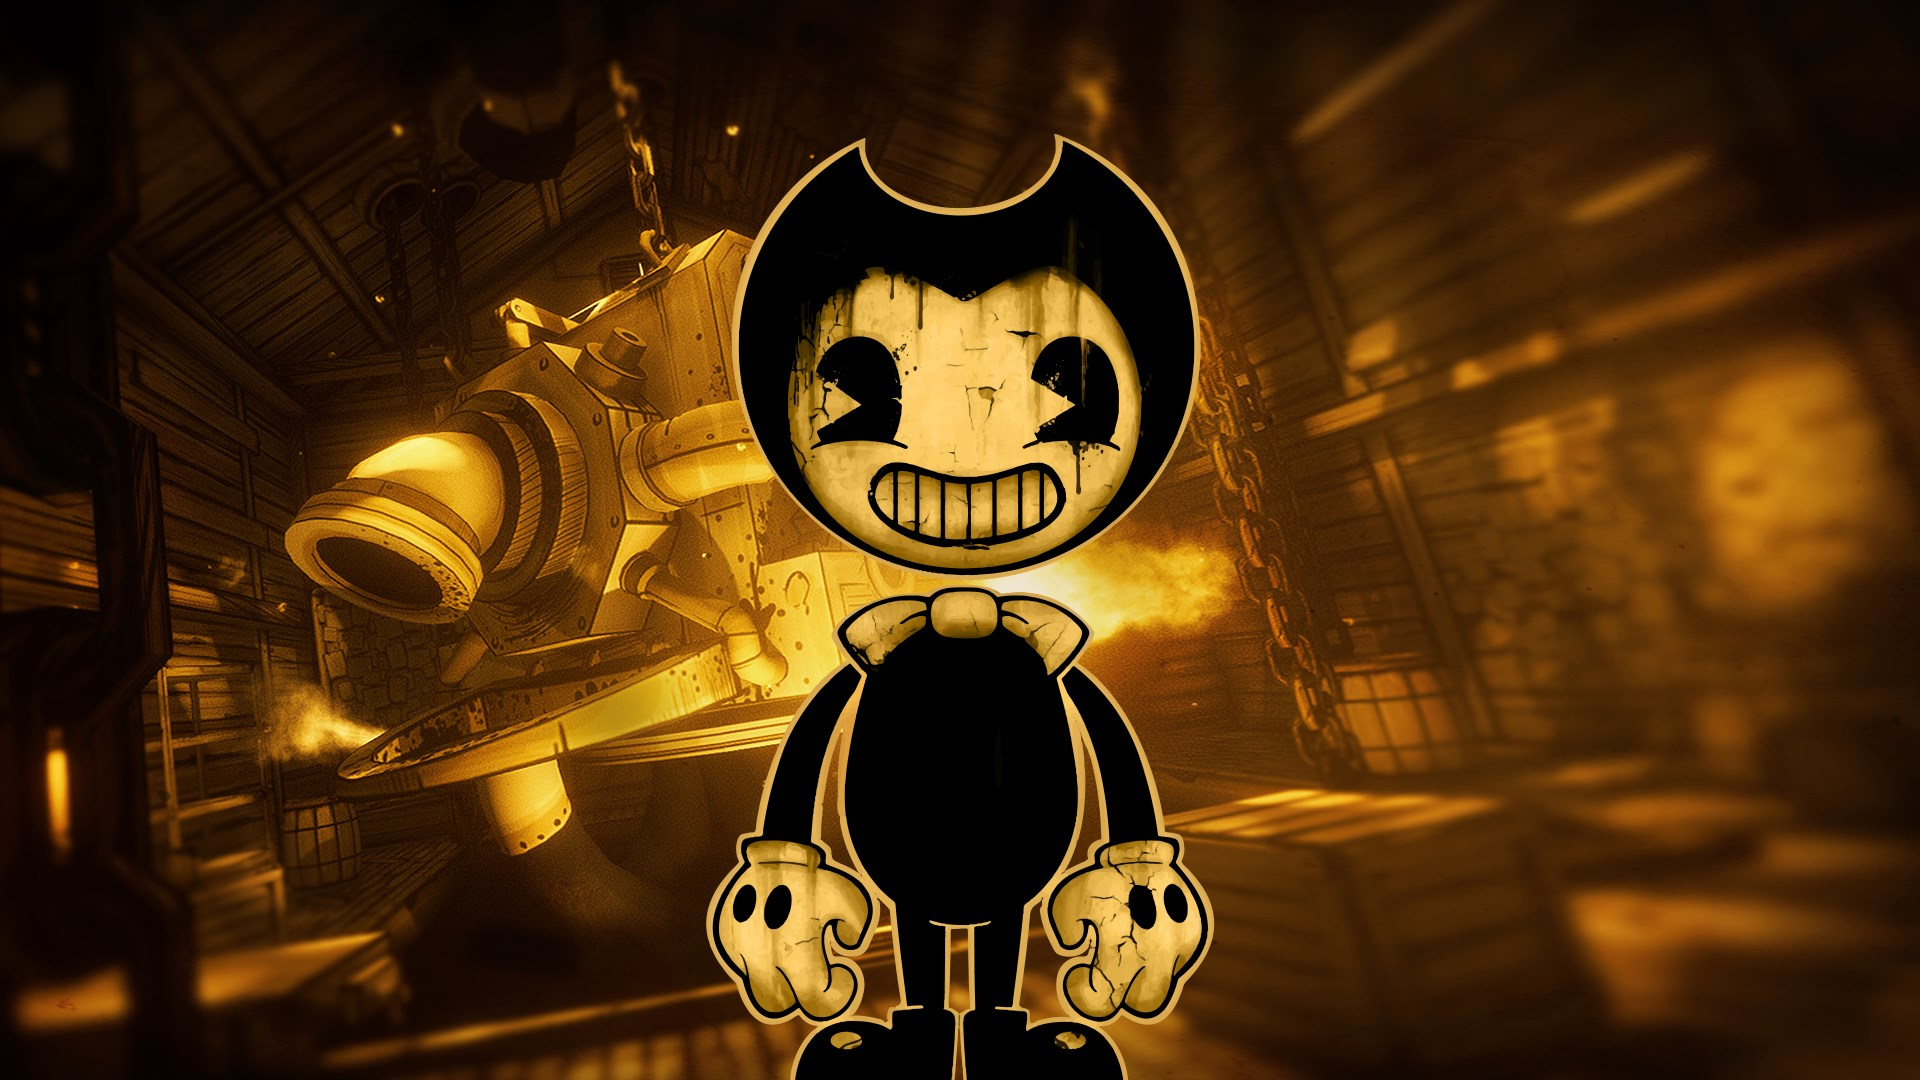 Bendy and The Dark Revival Announced, First Chapter Out in 2019